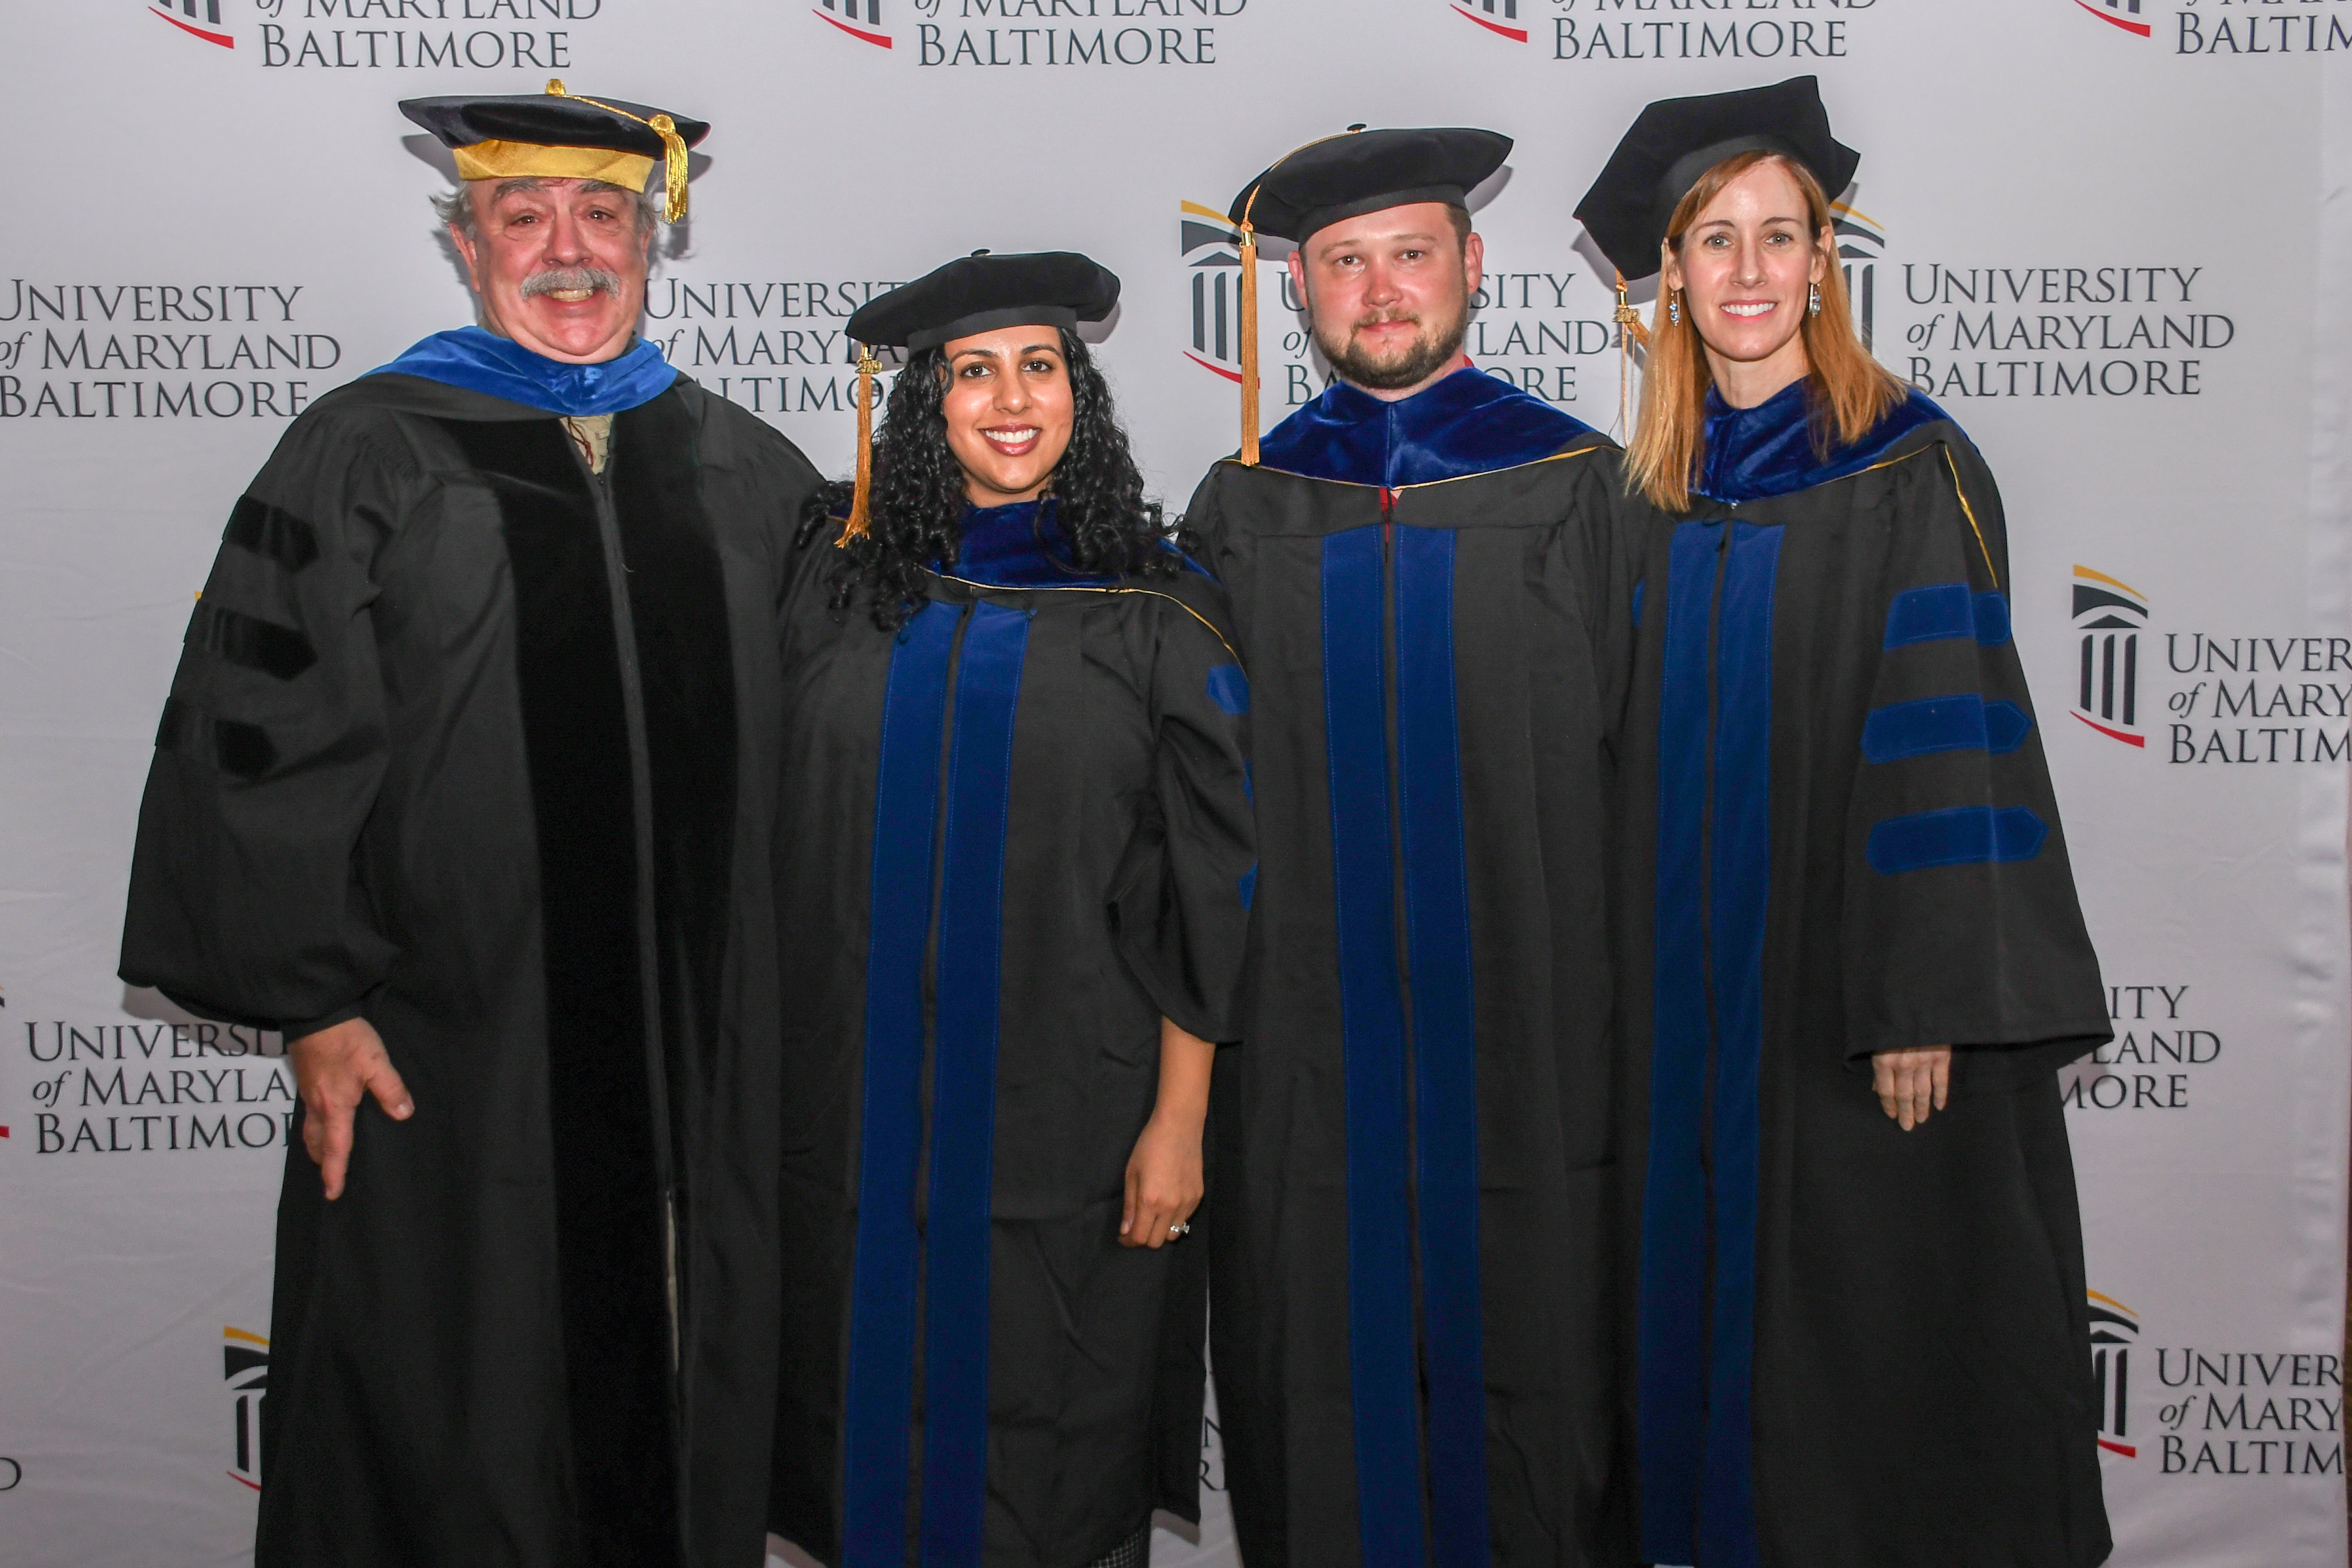 Al Place, Saddef Haq, Ben Oyler, and Mary Larkin in graduation robes and regalia